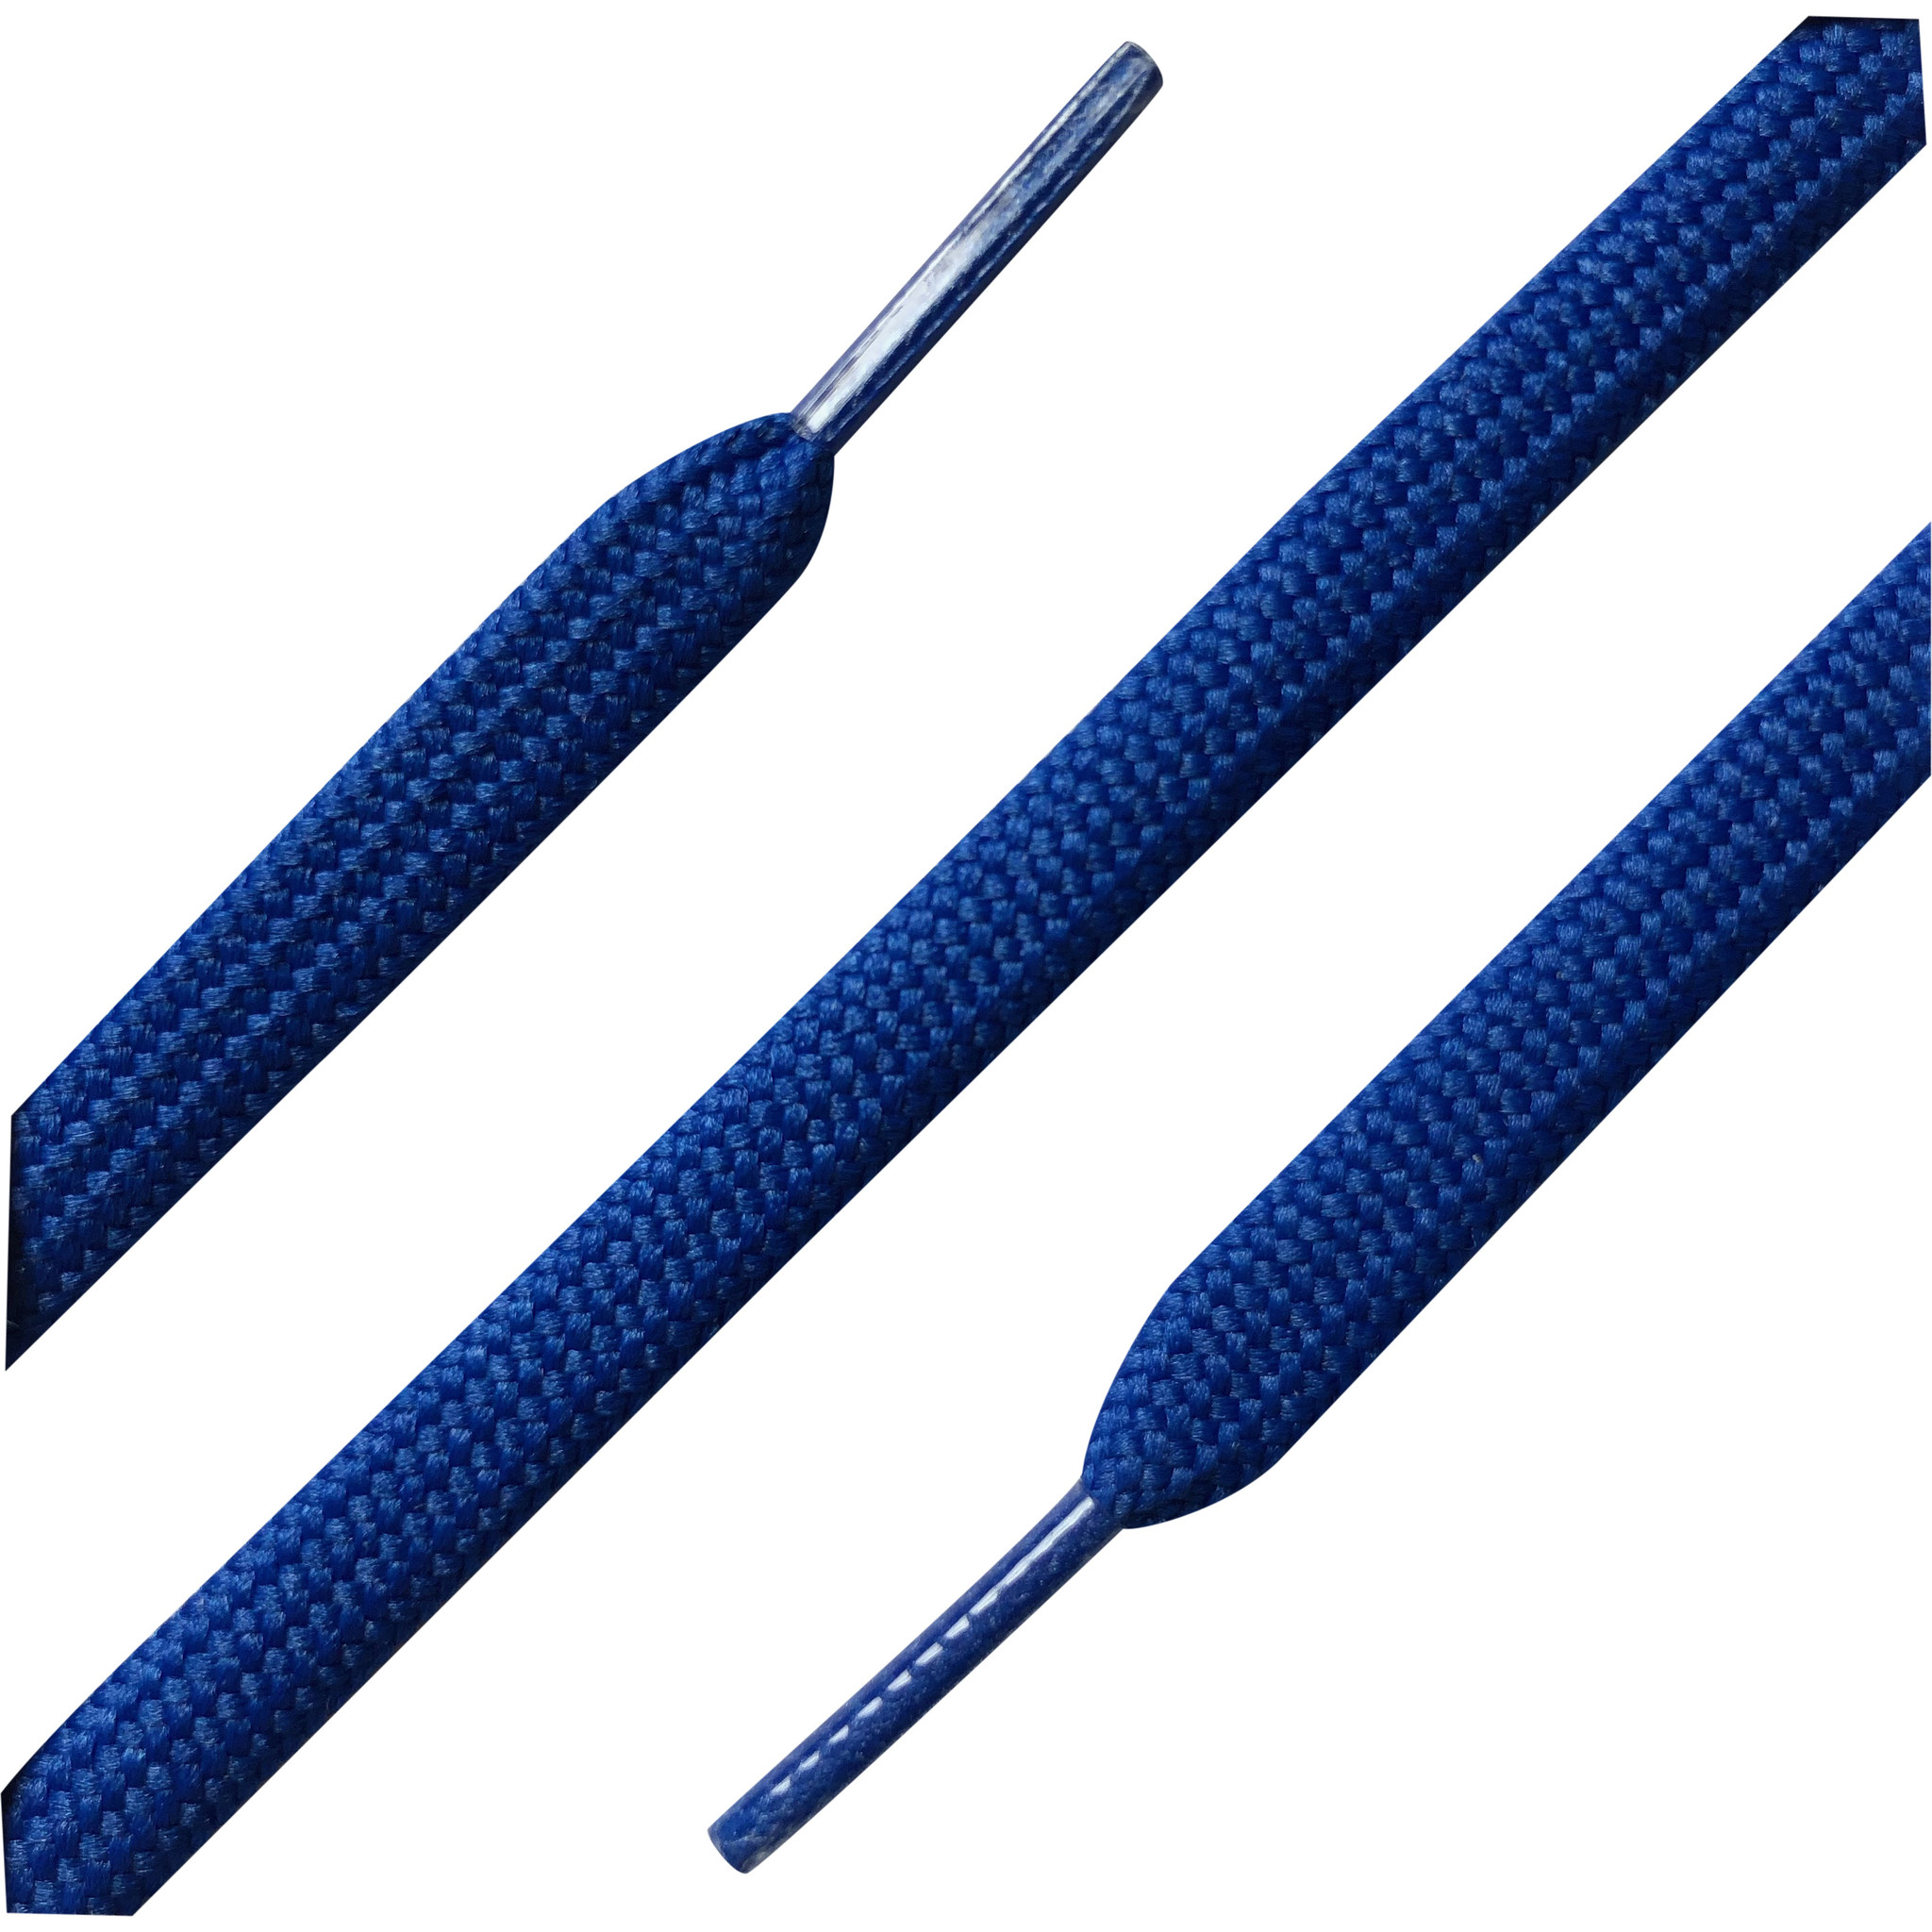 Barth Veters Barth veters 90cm - 045 - kobalt blauw